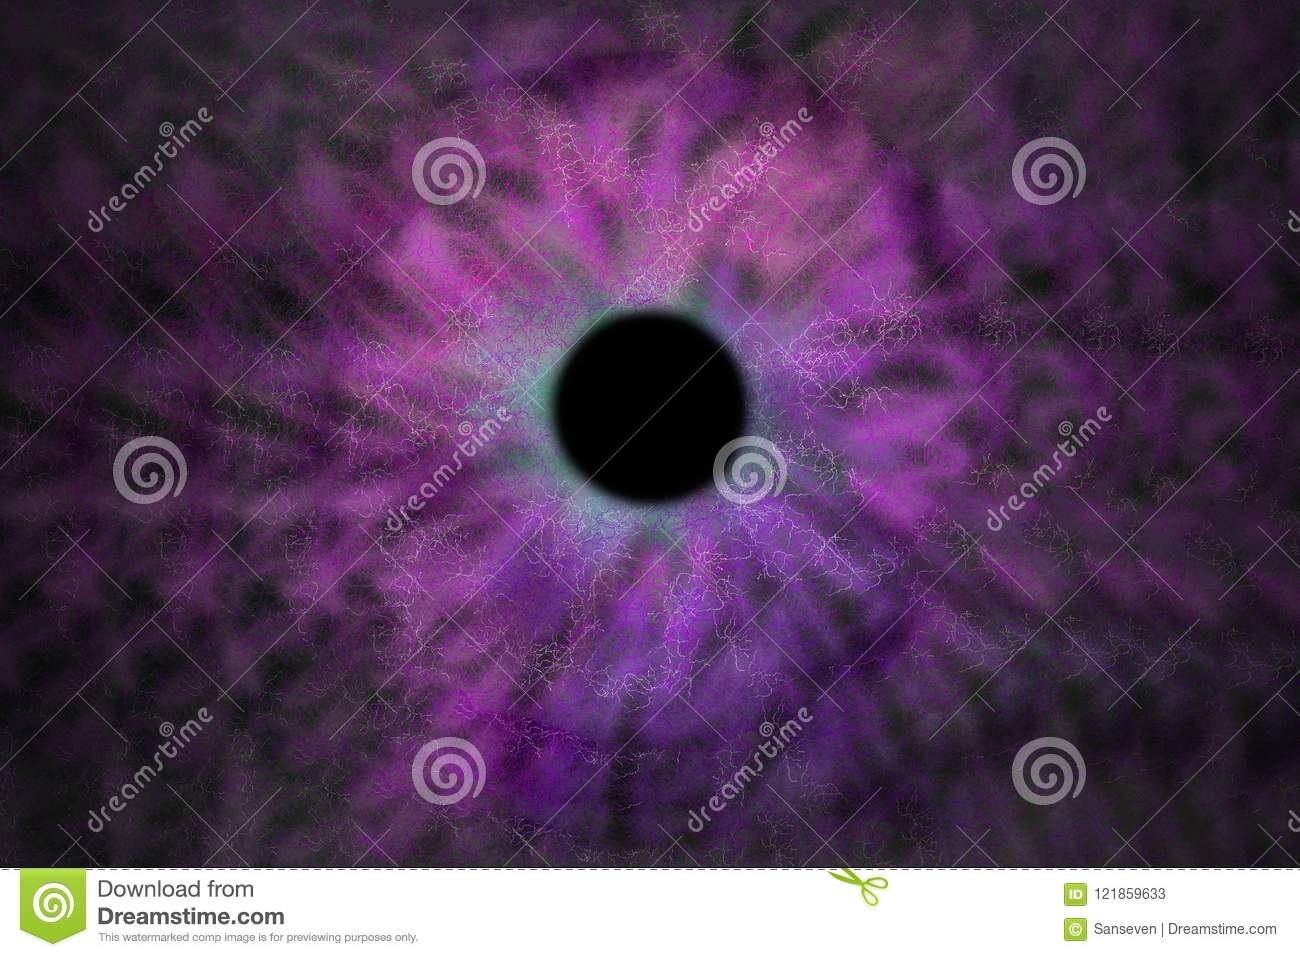 Iris Background - Galaxy Cosmos Style, Universe Astronomic Wallpaper with purple violet stardust